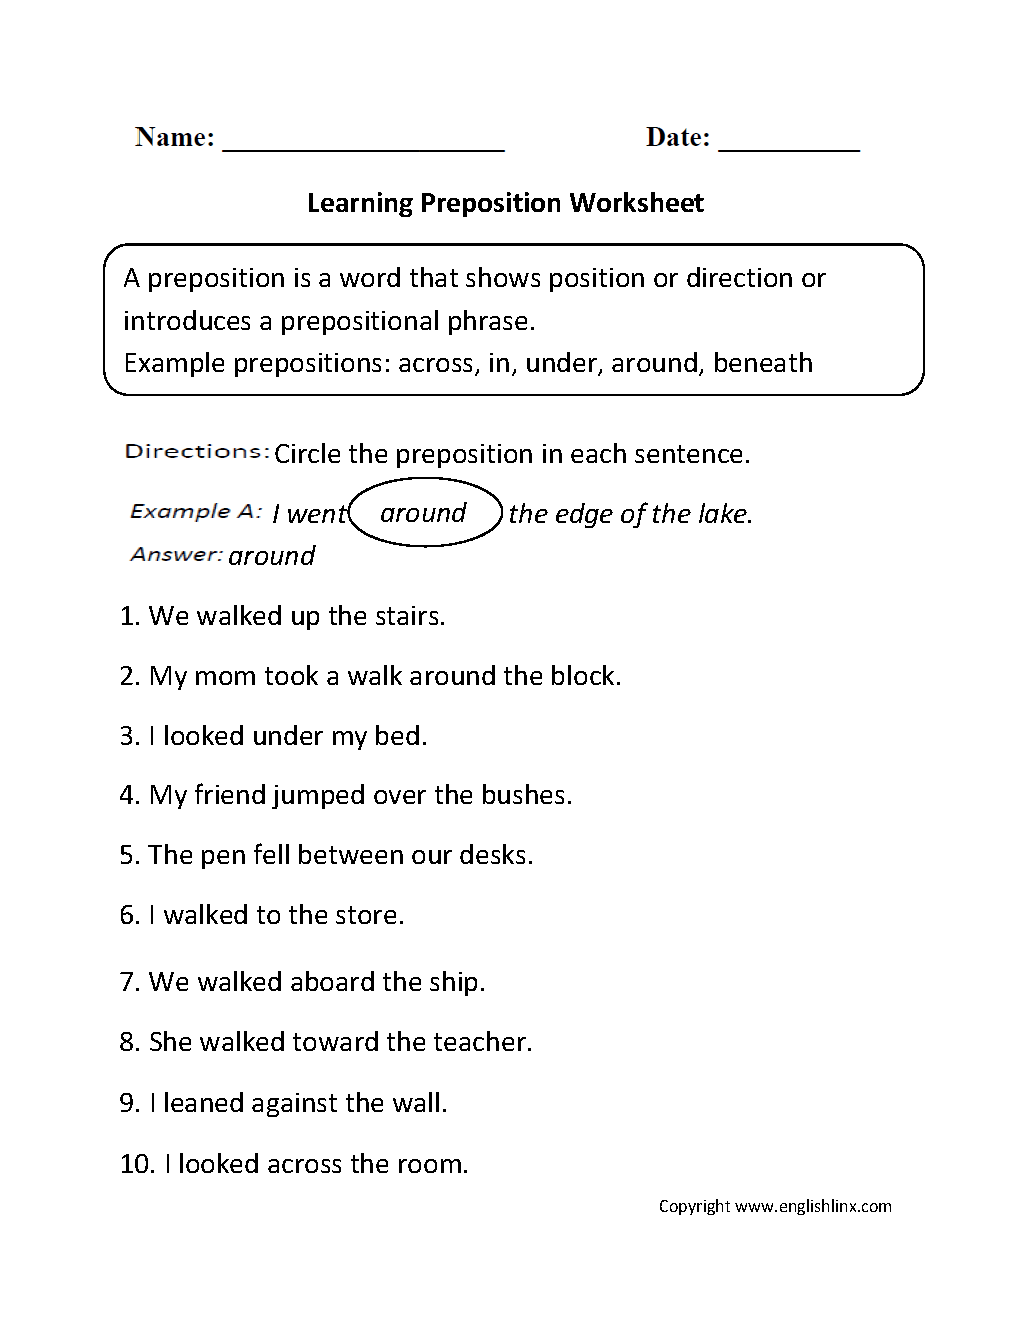 Workbooks speech worksheets : Parts Speech Worksheets | Preposition Worksheets